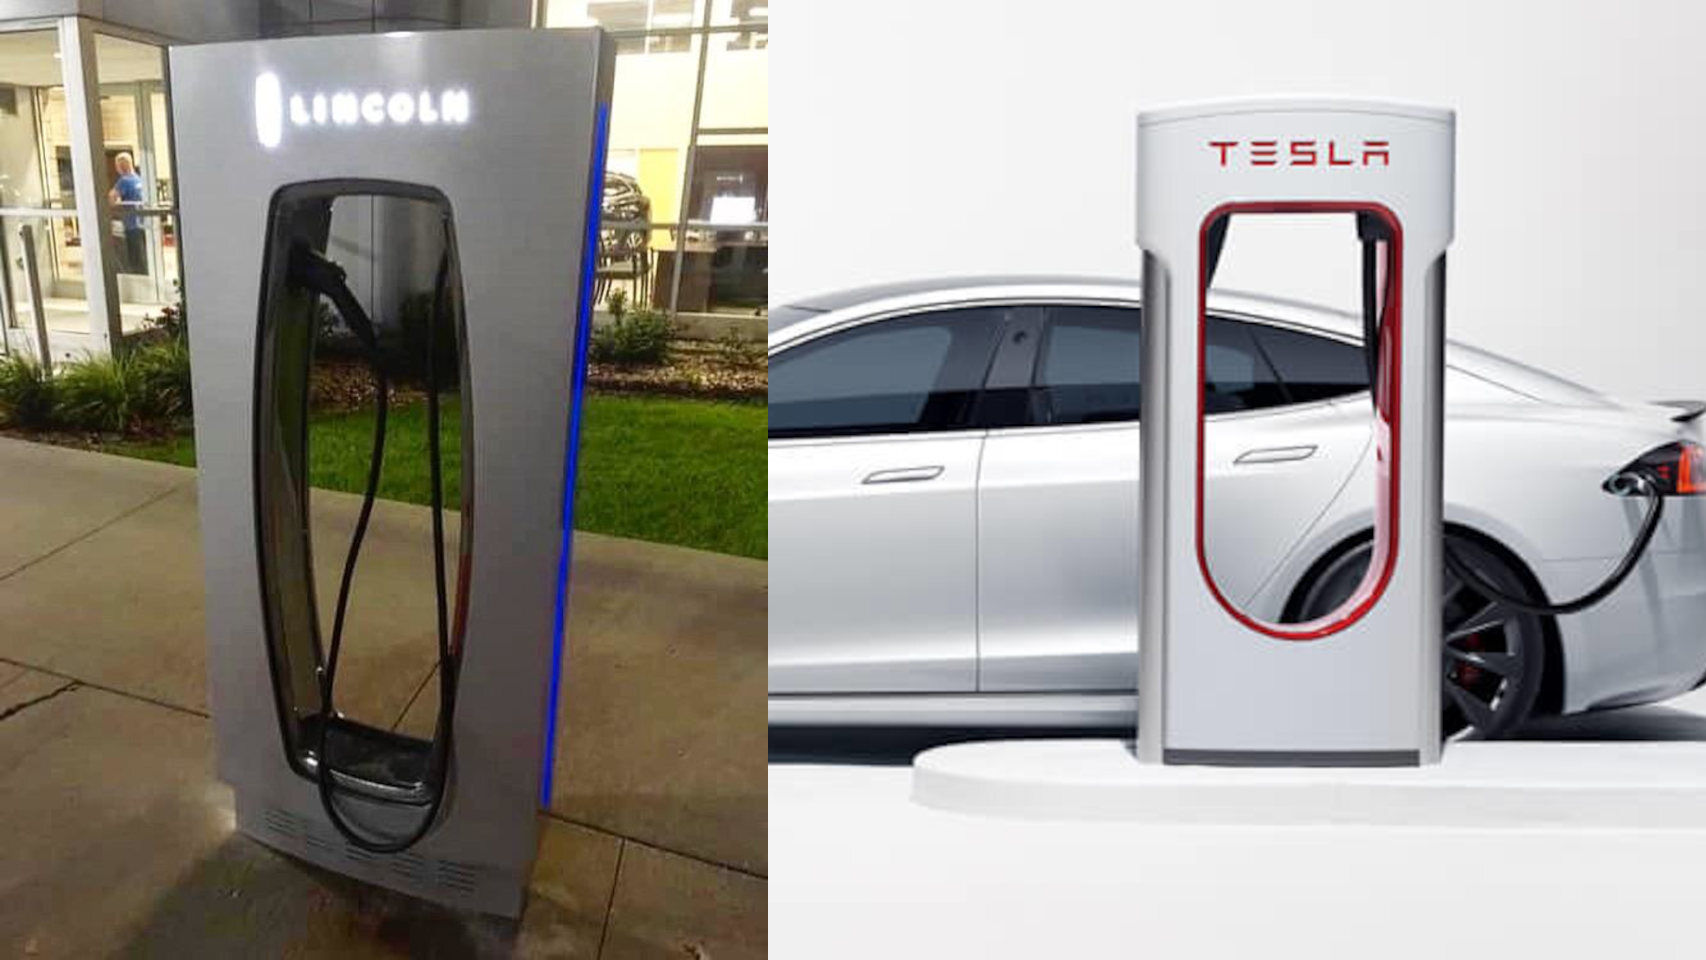 Ford launches its electric car charger … and is very similar to Tesla's